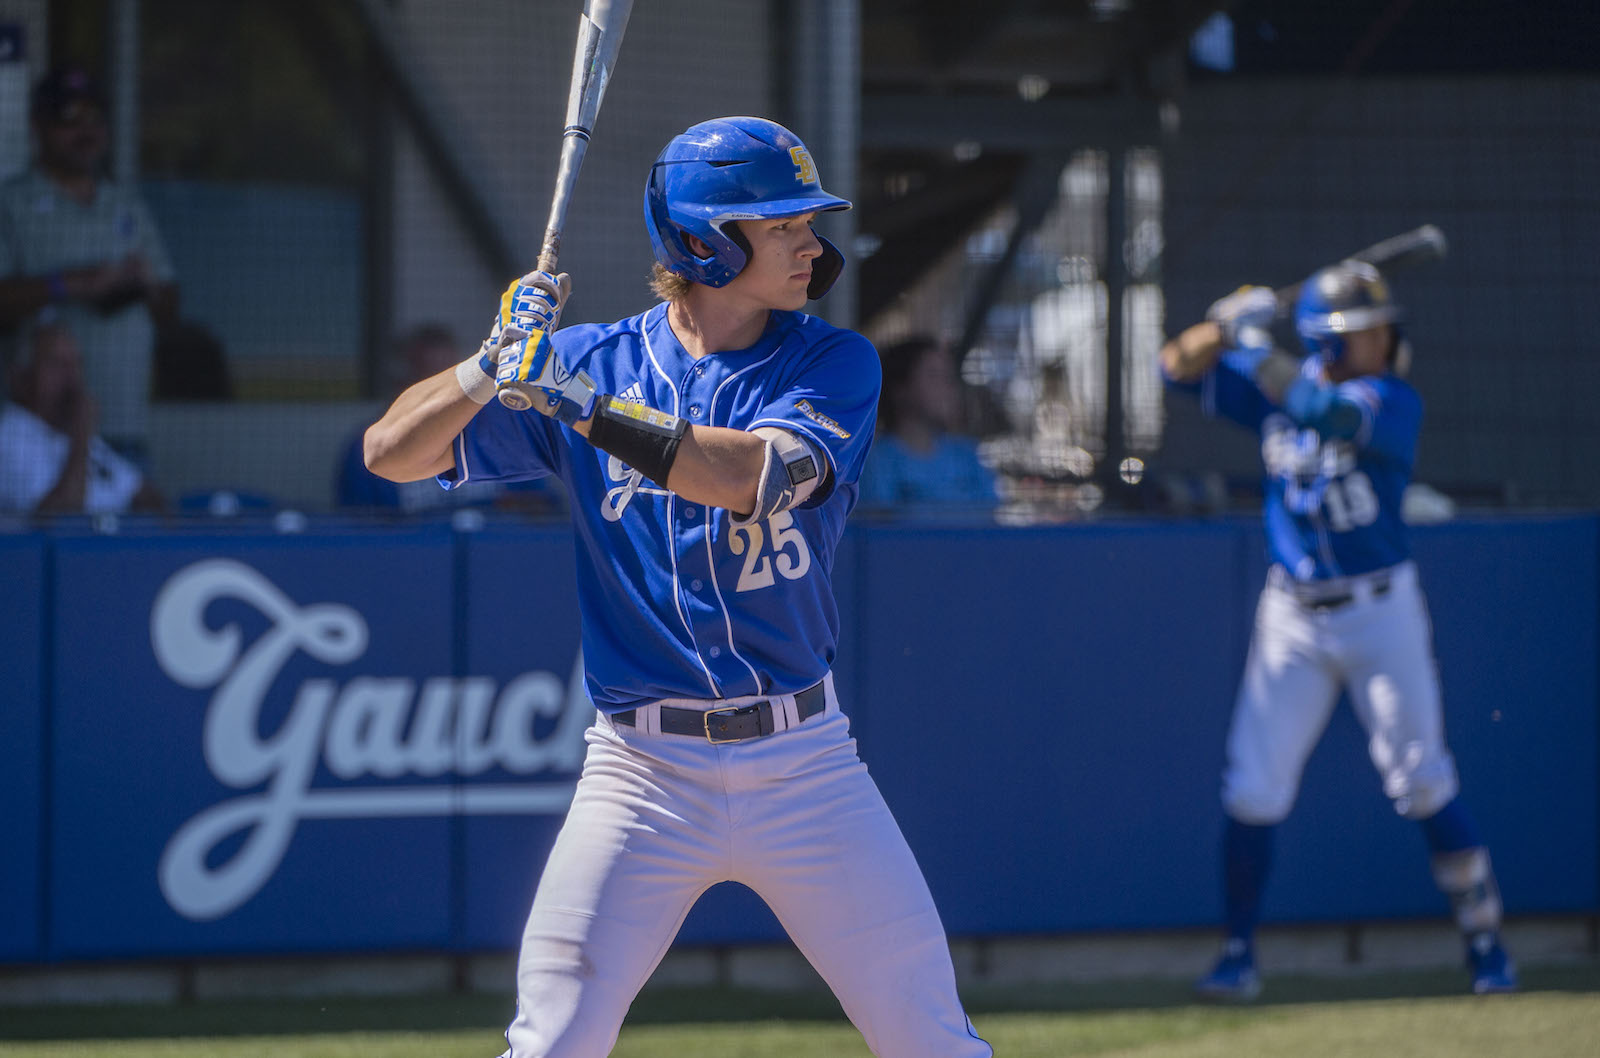 Canadians in NCAA baseball tournament